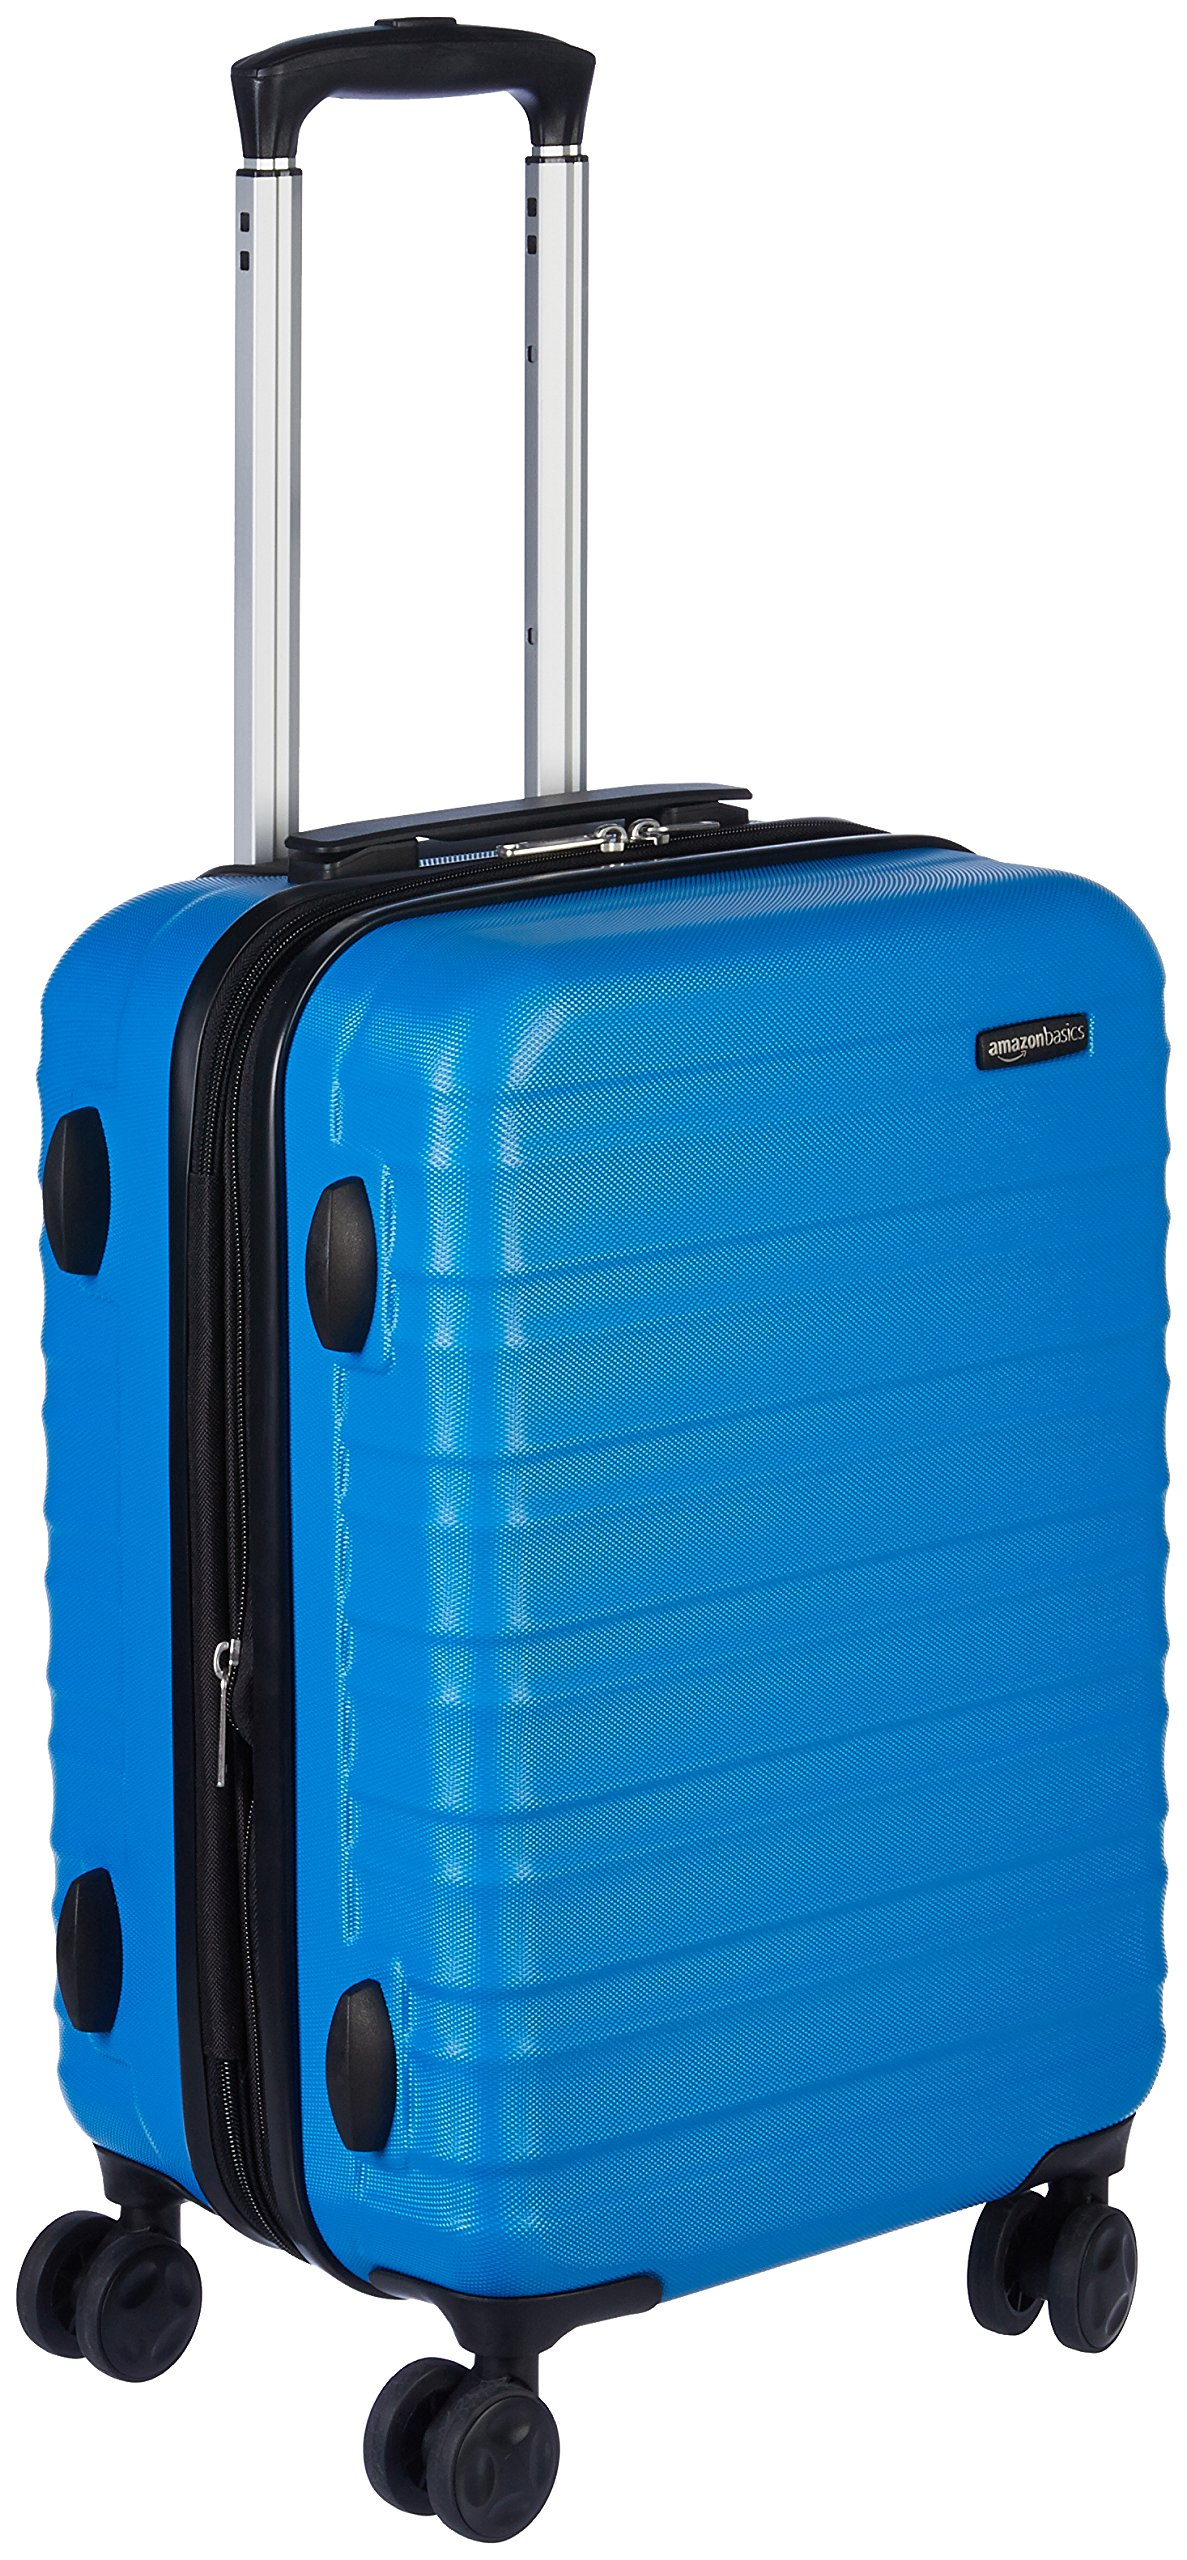 AmazonBasics Hardside Spinner Luggage, 20-inch Carry-on/Cabin Size, Light Blue product image